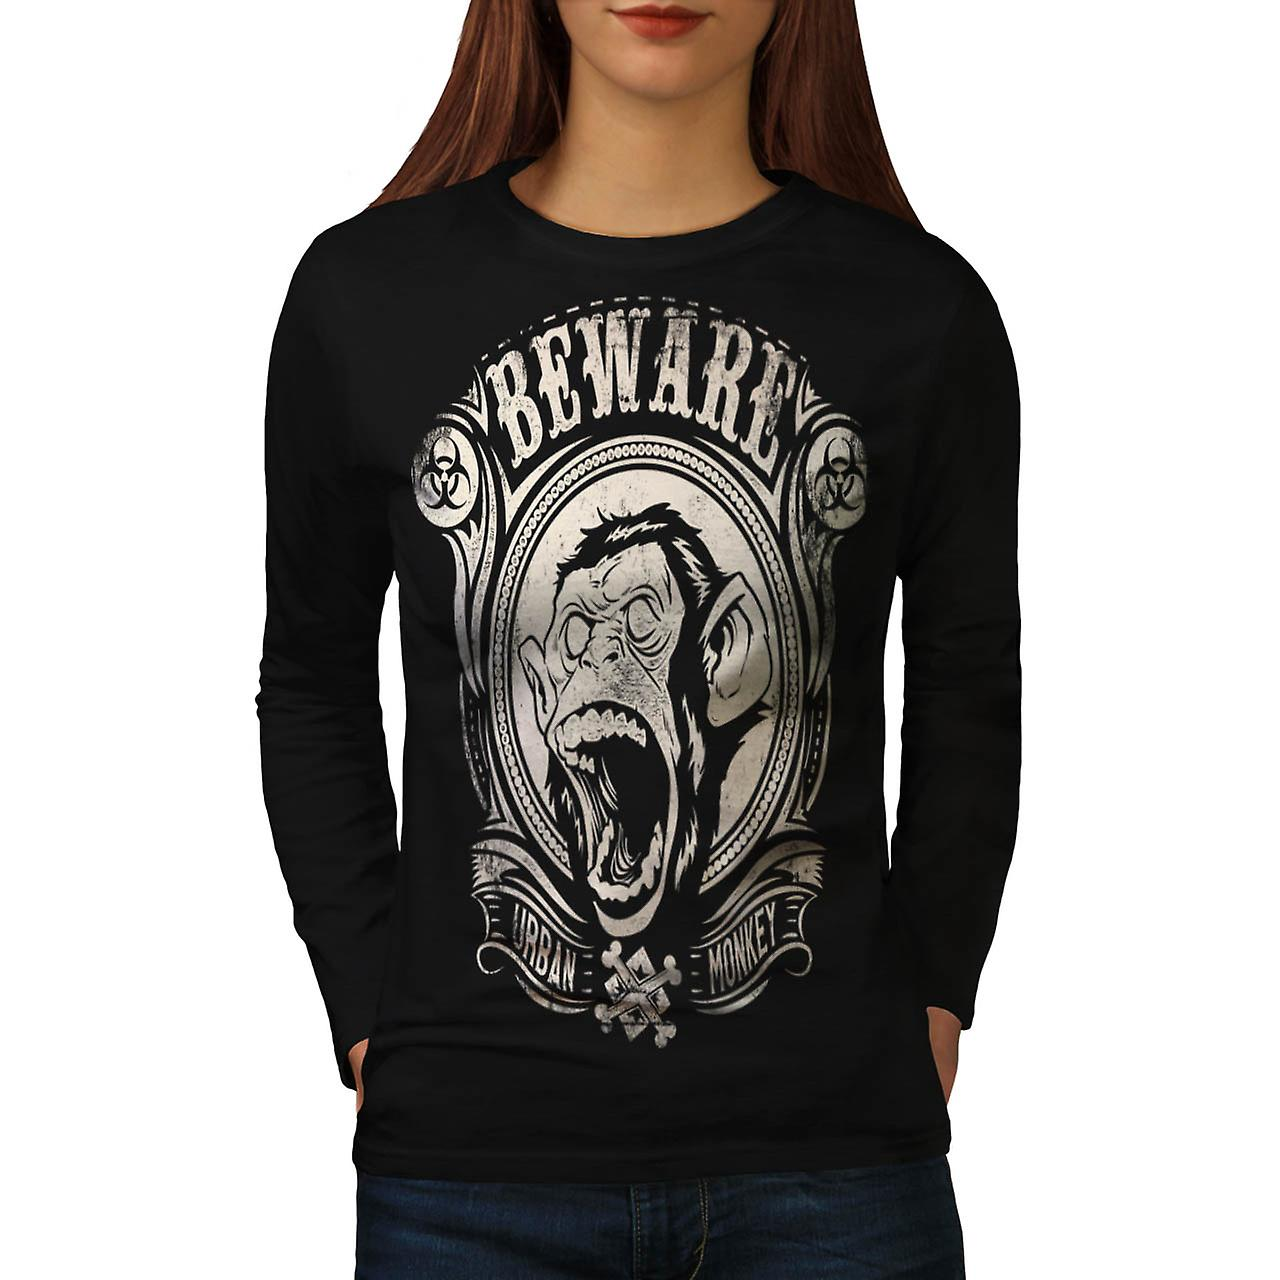 Beware Urban Monkey Danger Chimp Women Black Long Sleeve T-shirt | Wellcoda